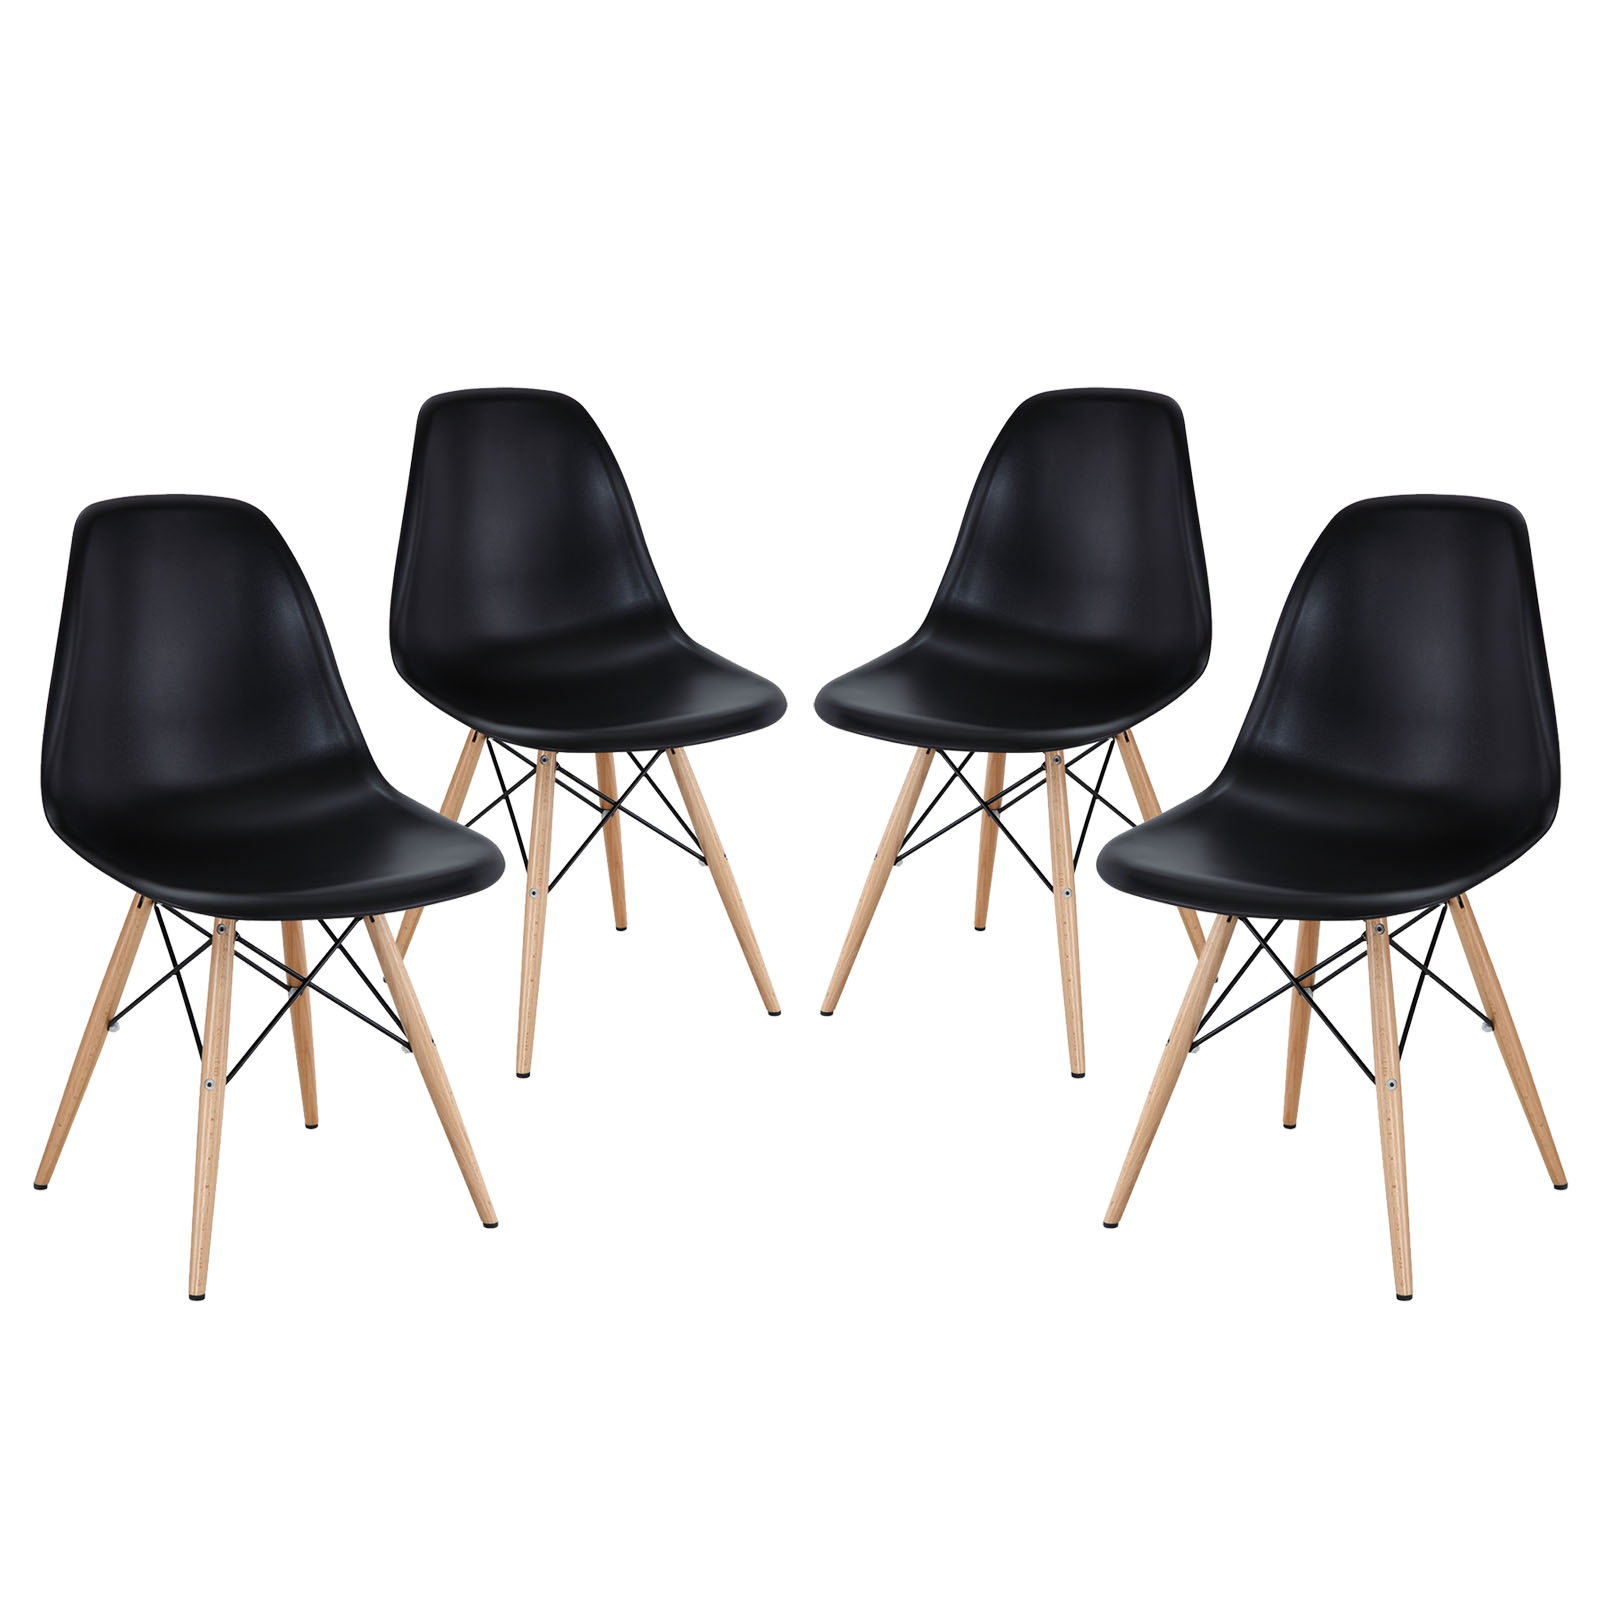 Modern Contemporary Kitchen Dining Side Chairs Set of Four Black